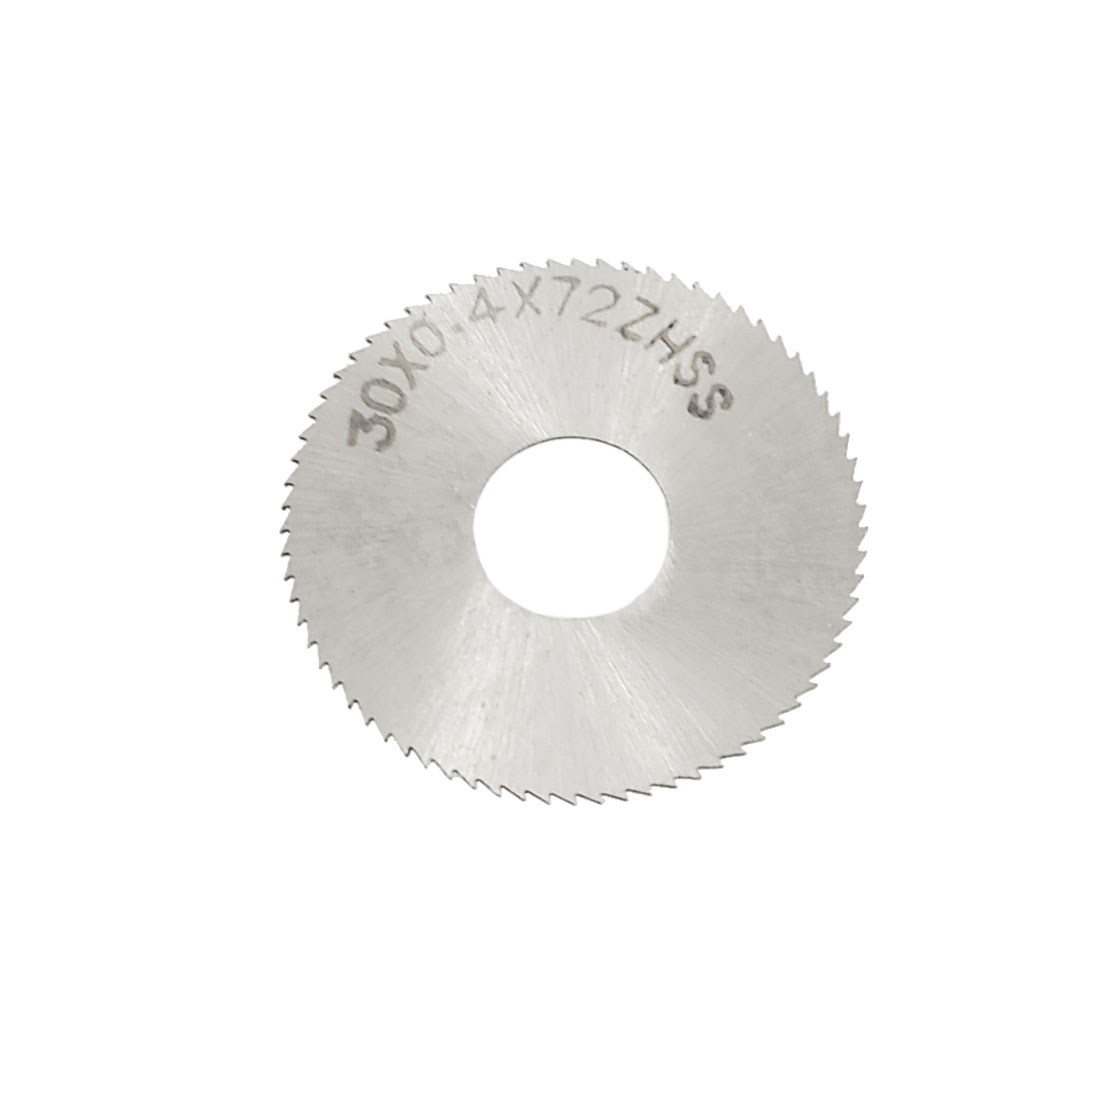 30mm Cutting Dia 0.4mm Thickness Circle 72T Slitting Saw